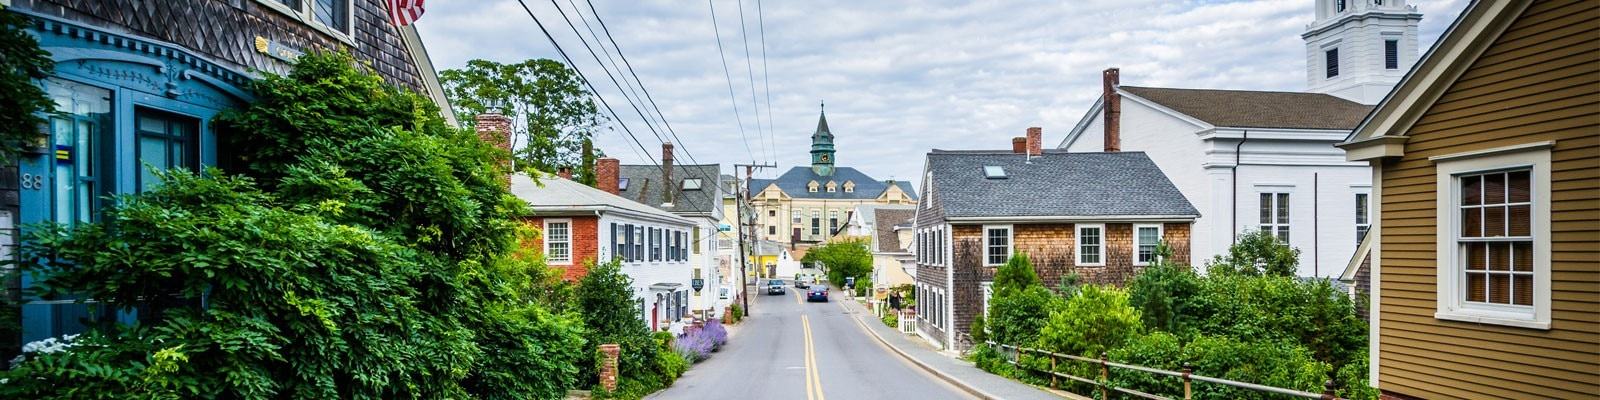 Massachusetts town road by Shutterstock